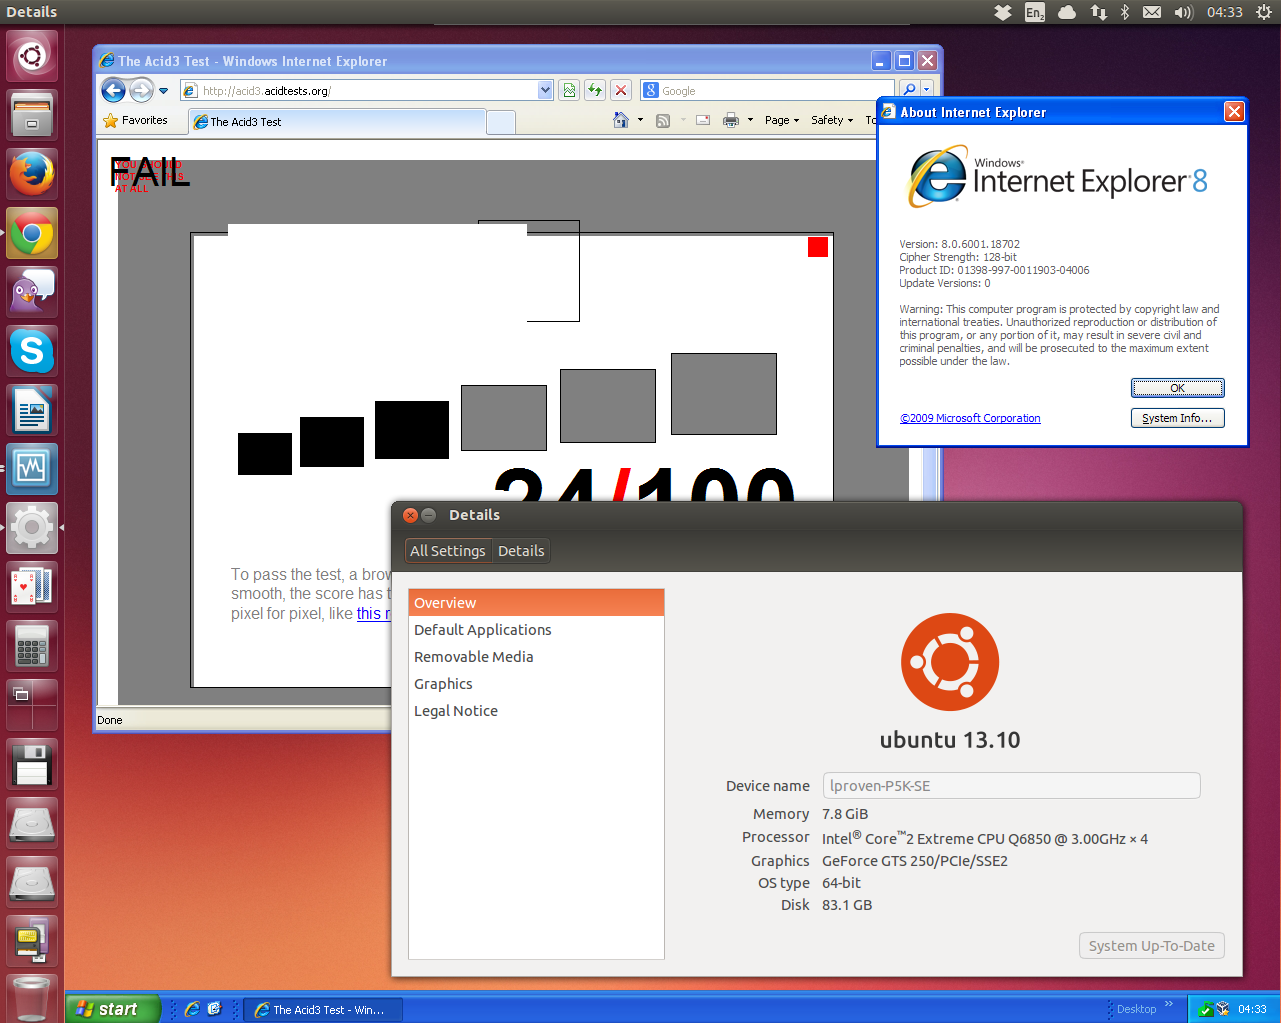 Windows XP on Ubuntu in perfect harmony